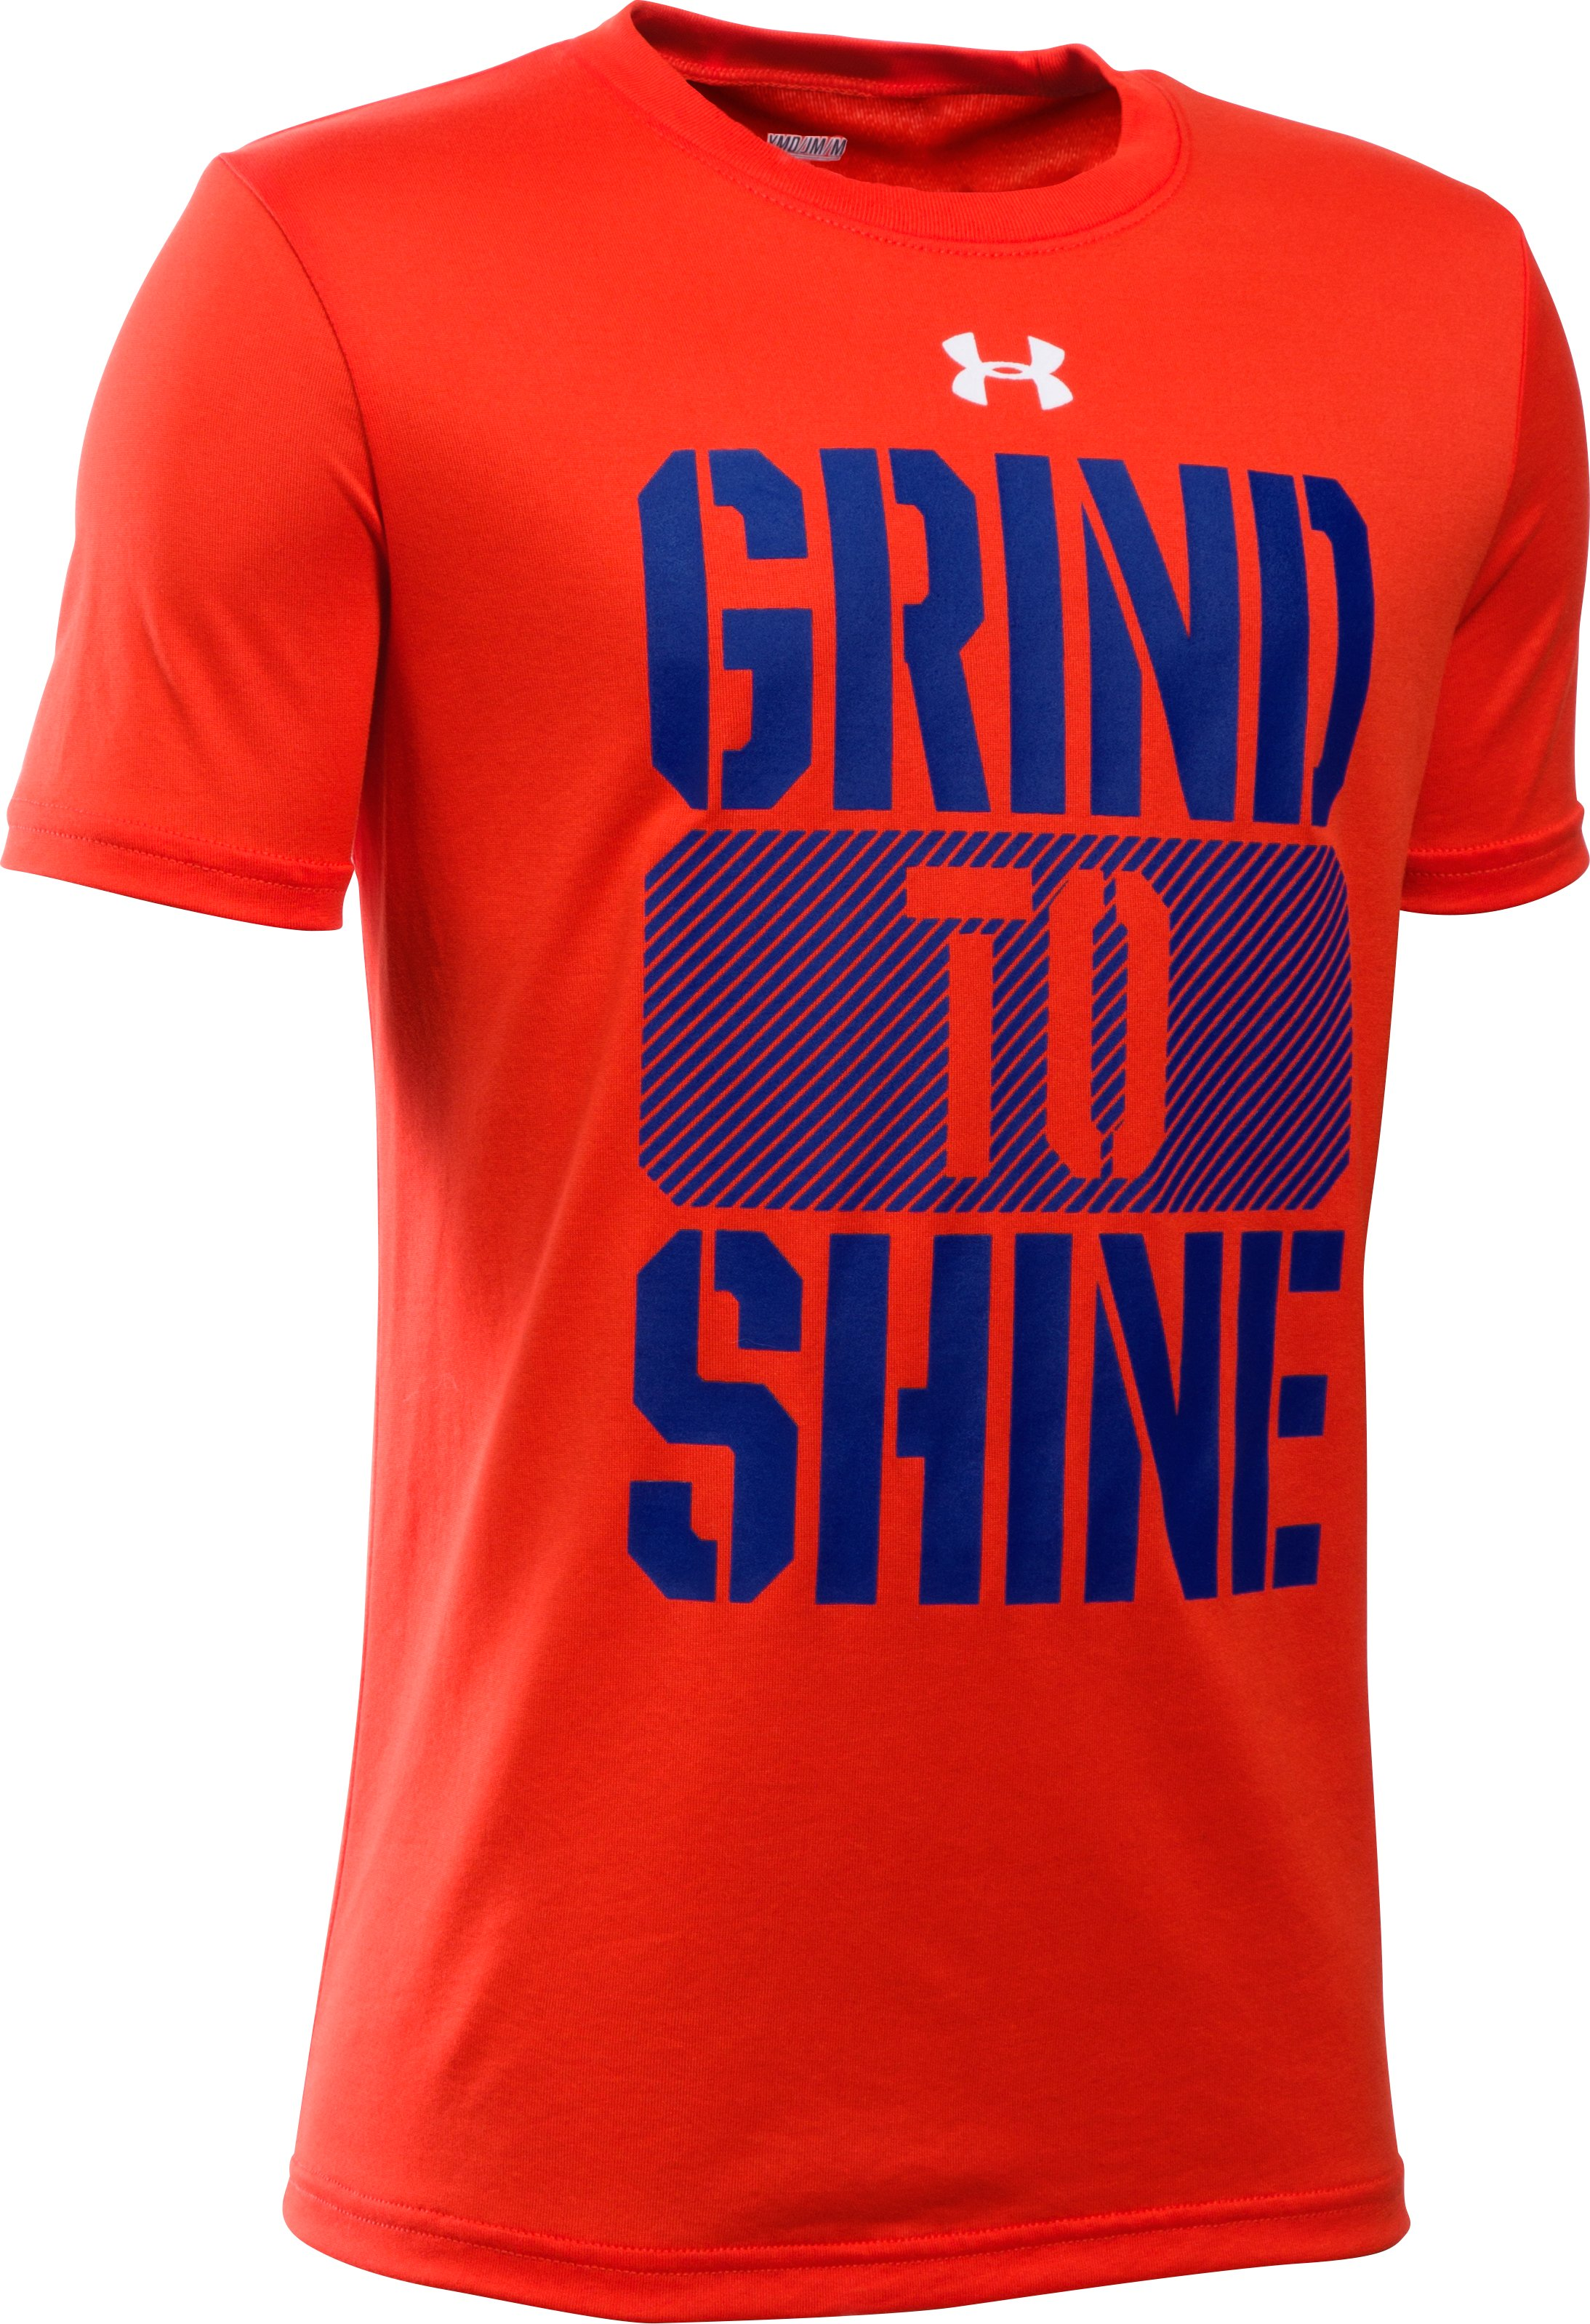 Boys' UA Grind To Shine T-Shirt, Volcano, zoomed image